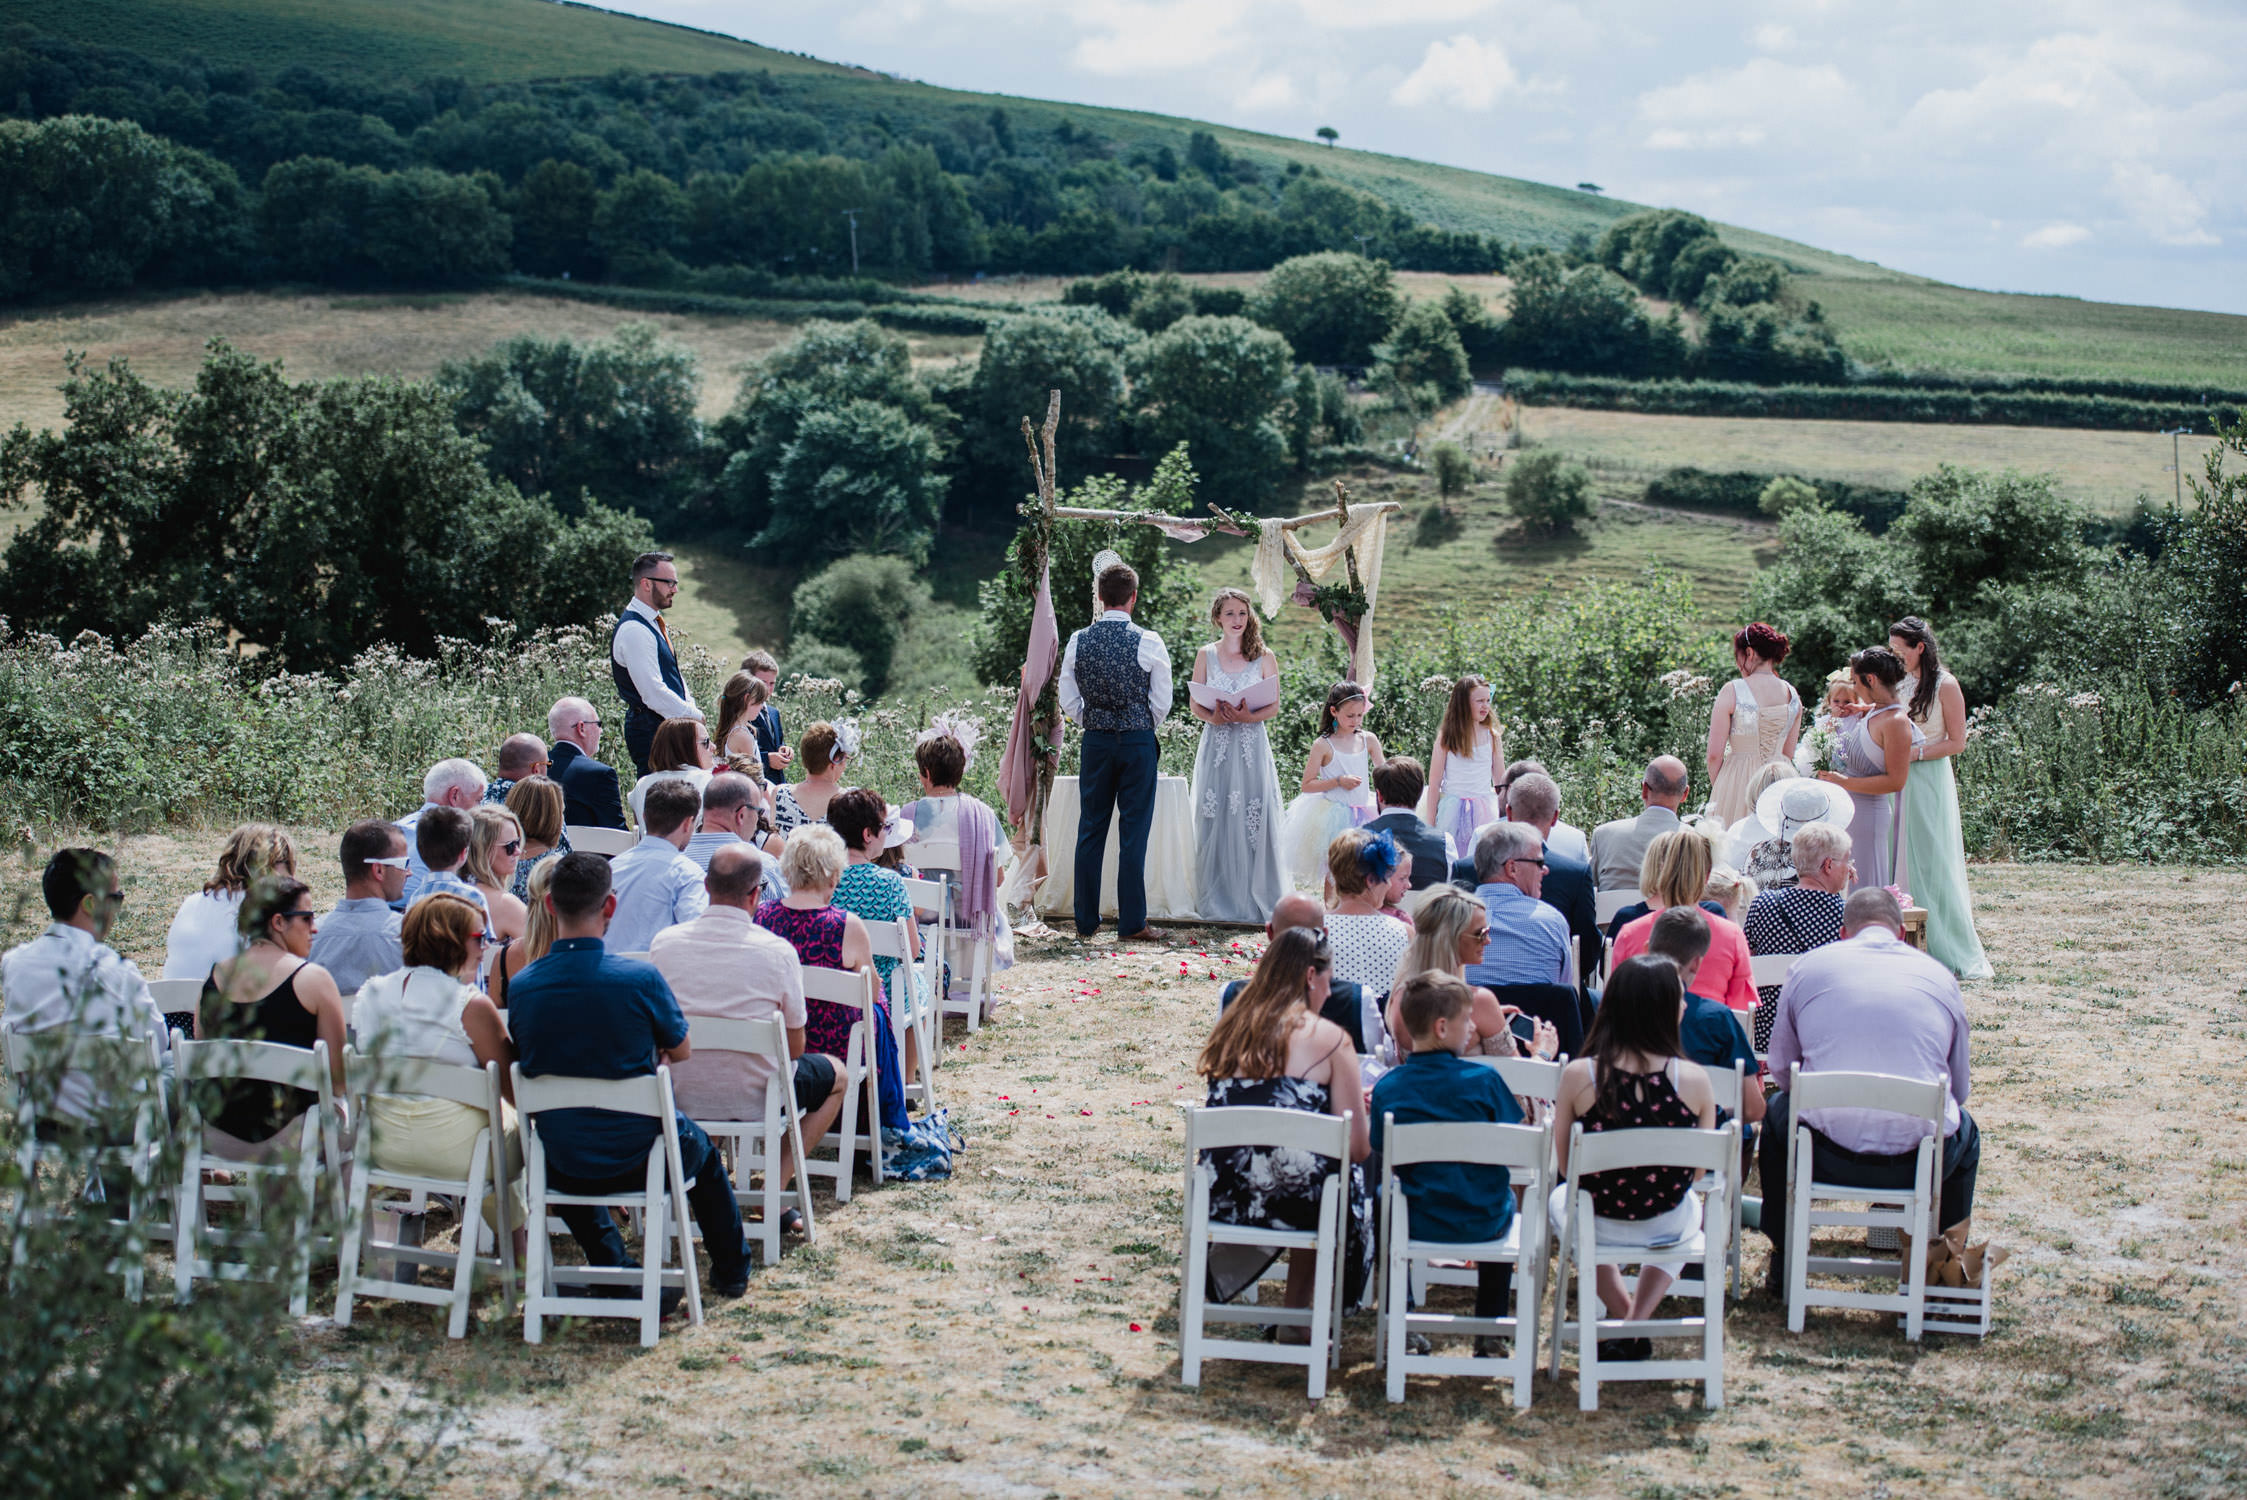 Whitemoor farm wedding photographer in devon, outside wedding , north devon wedding photographer